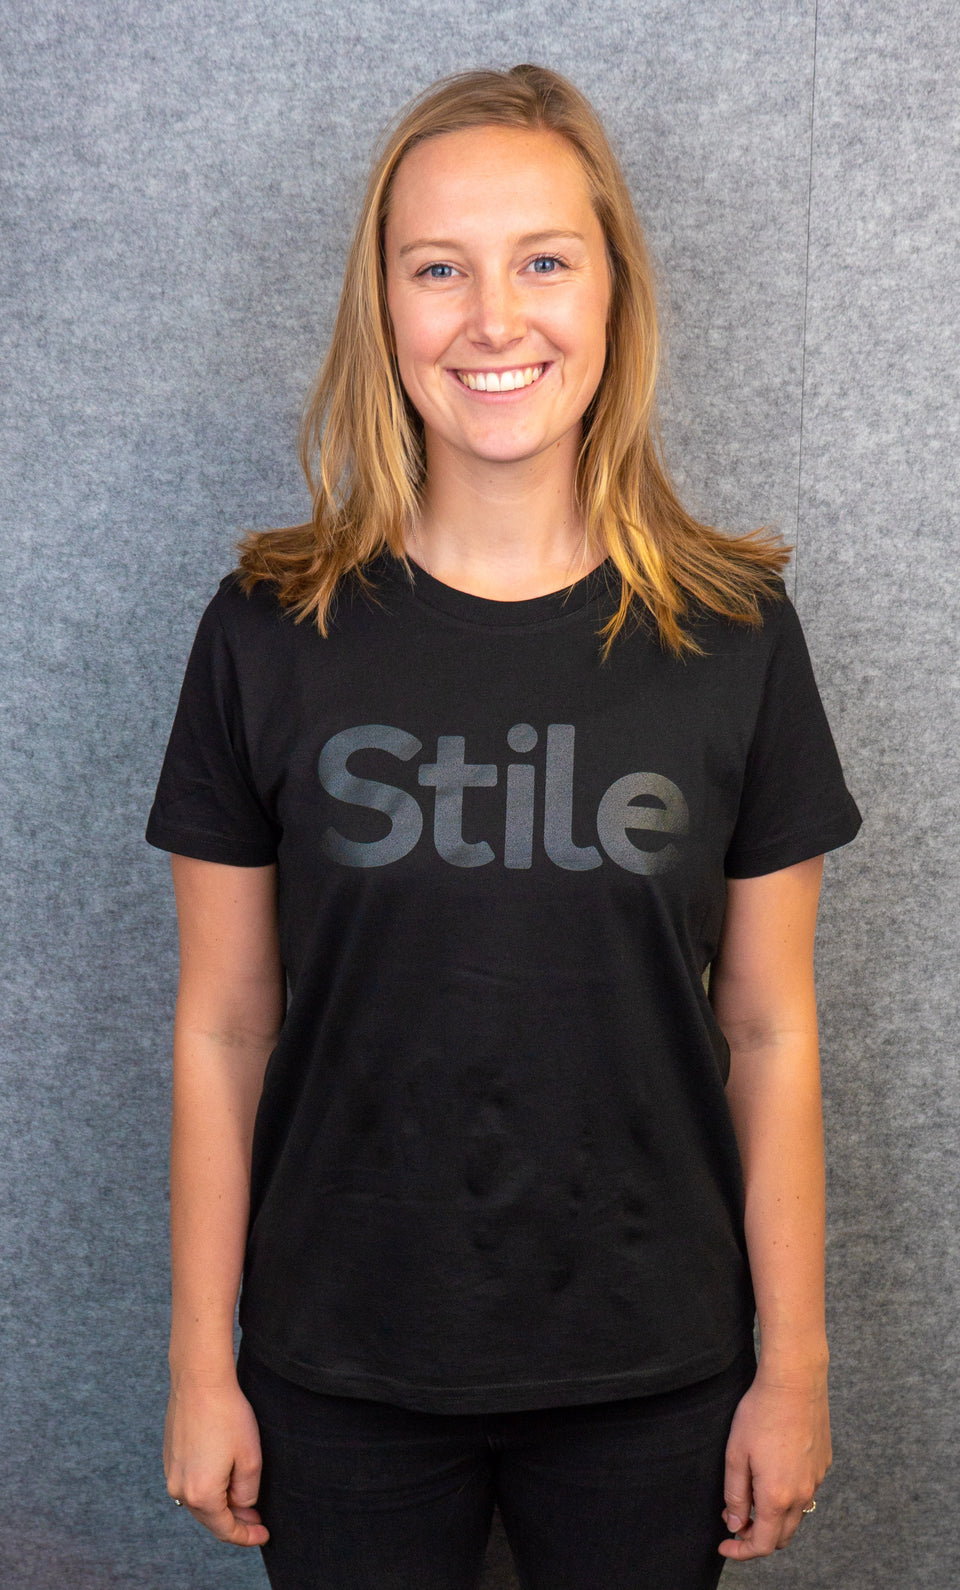 Black women's Stile Tee